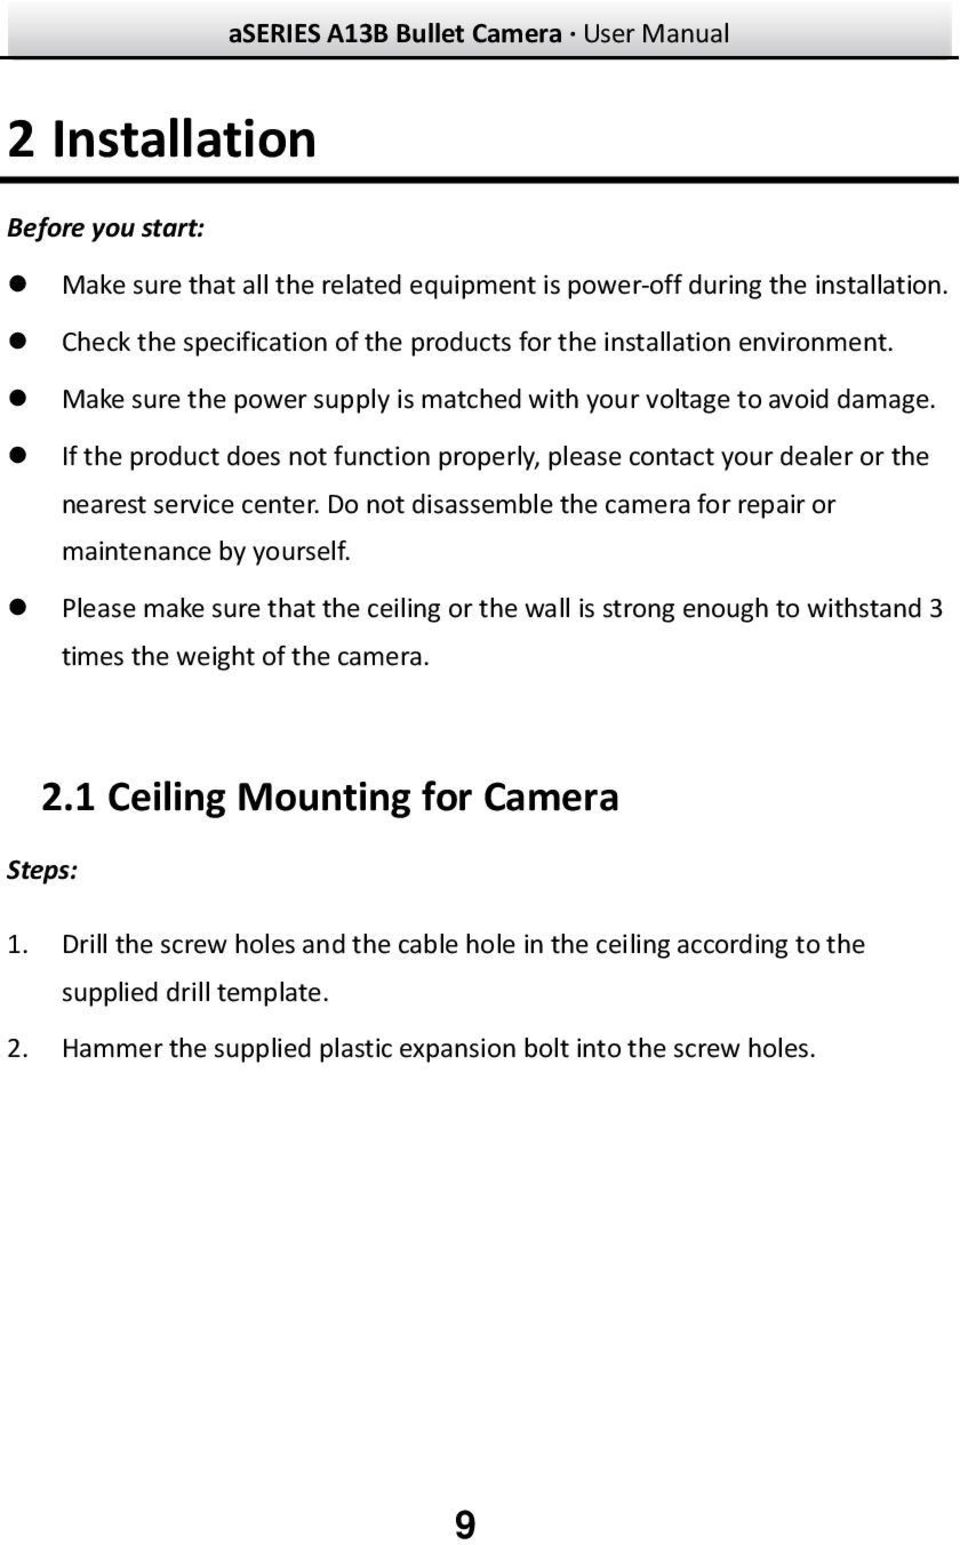 If the product does not function properly, please contact your dealer or the nearest service center. Do not disassemble the camera for repair or maintenance by yourself.